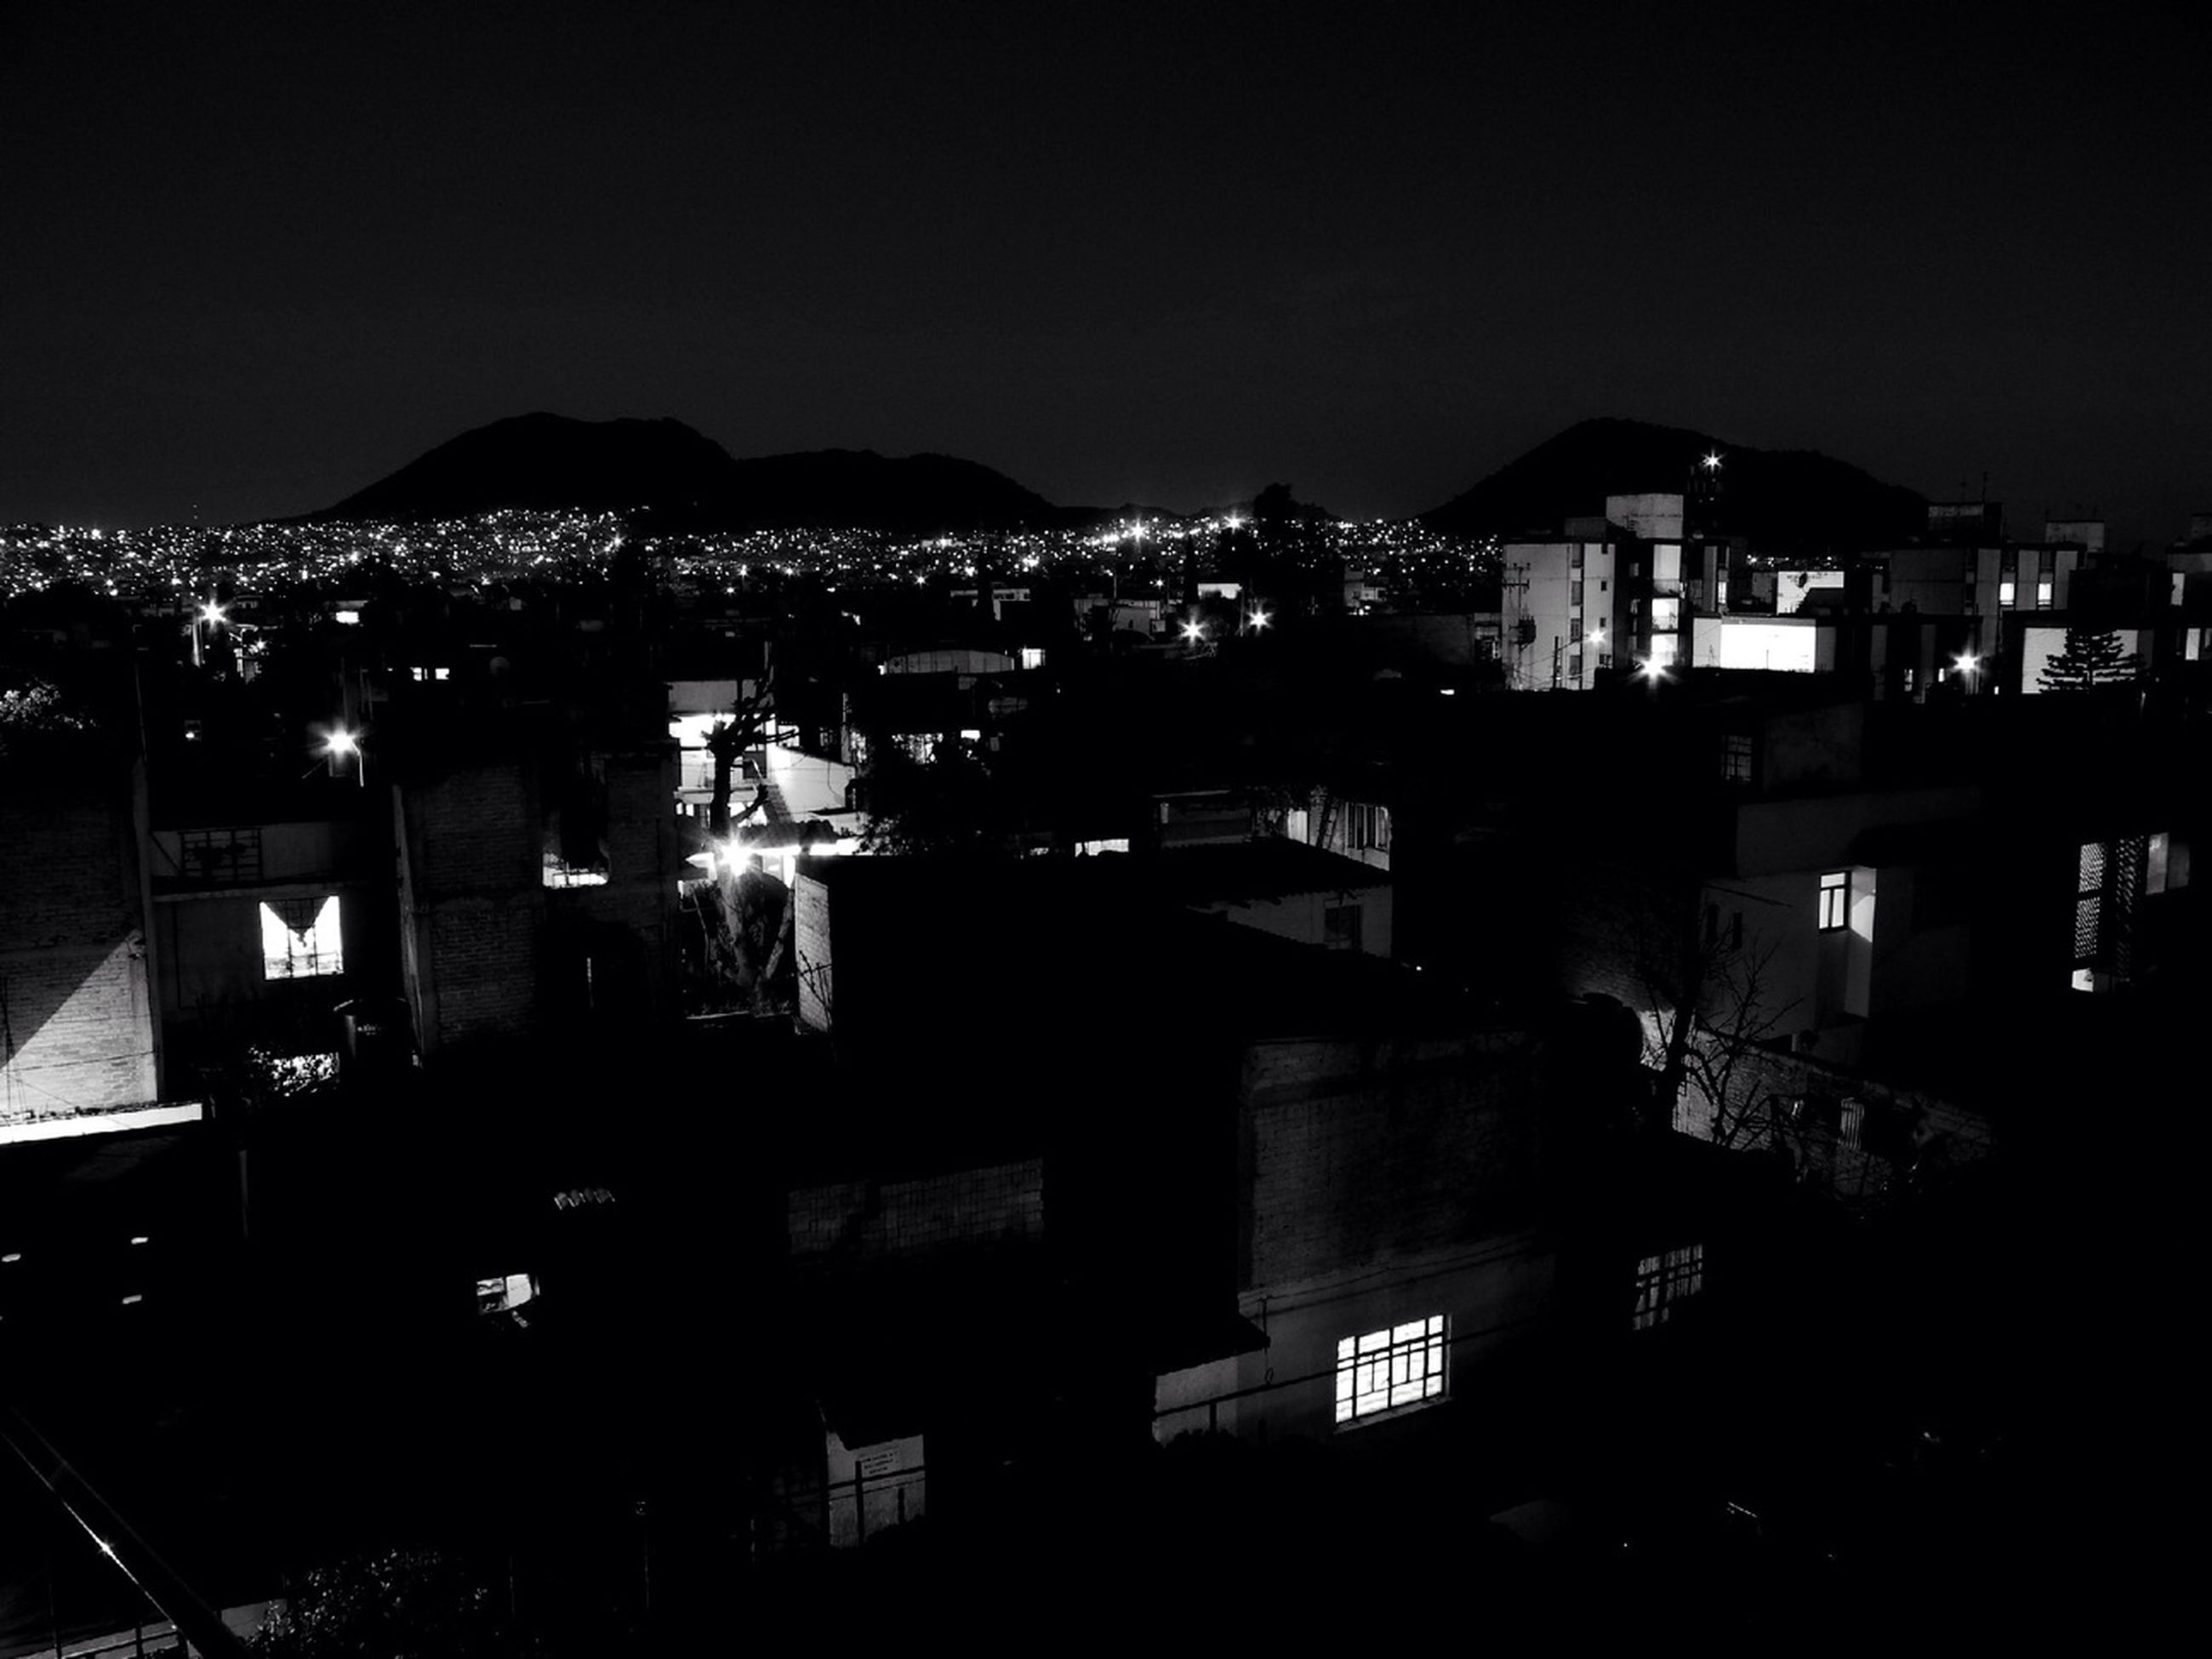 building exterior, illuminated, night, architecture, built structure, city, cityscape, residential building, residential structure, residential district, house, high angle view, copy space, clear sky, crowded, mountain, town, dark, outdoors, dusk